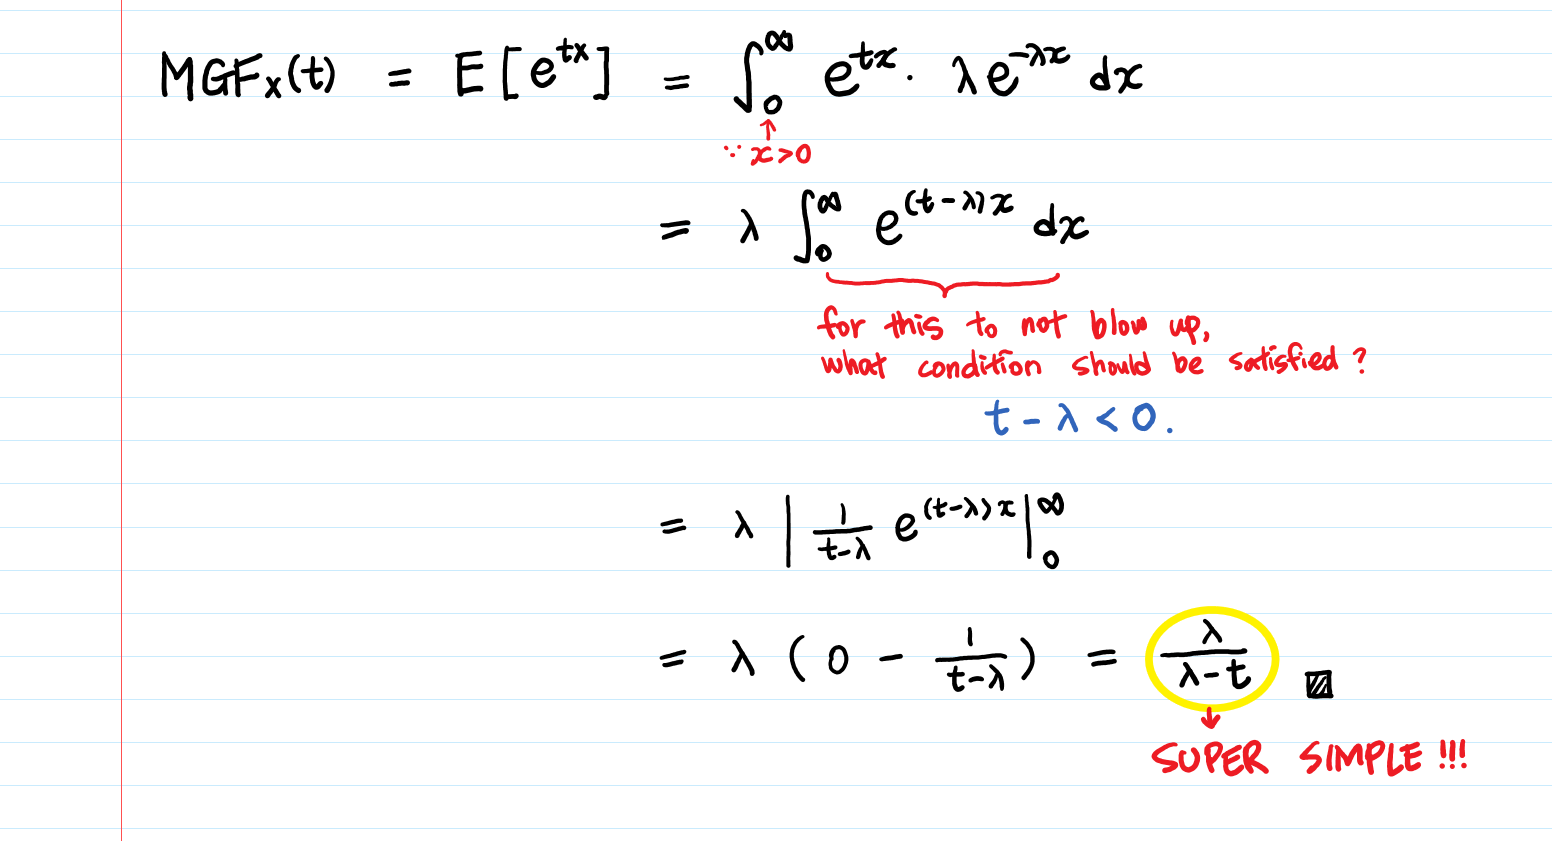 MGF of the exponential distribution 2